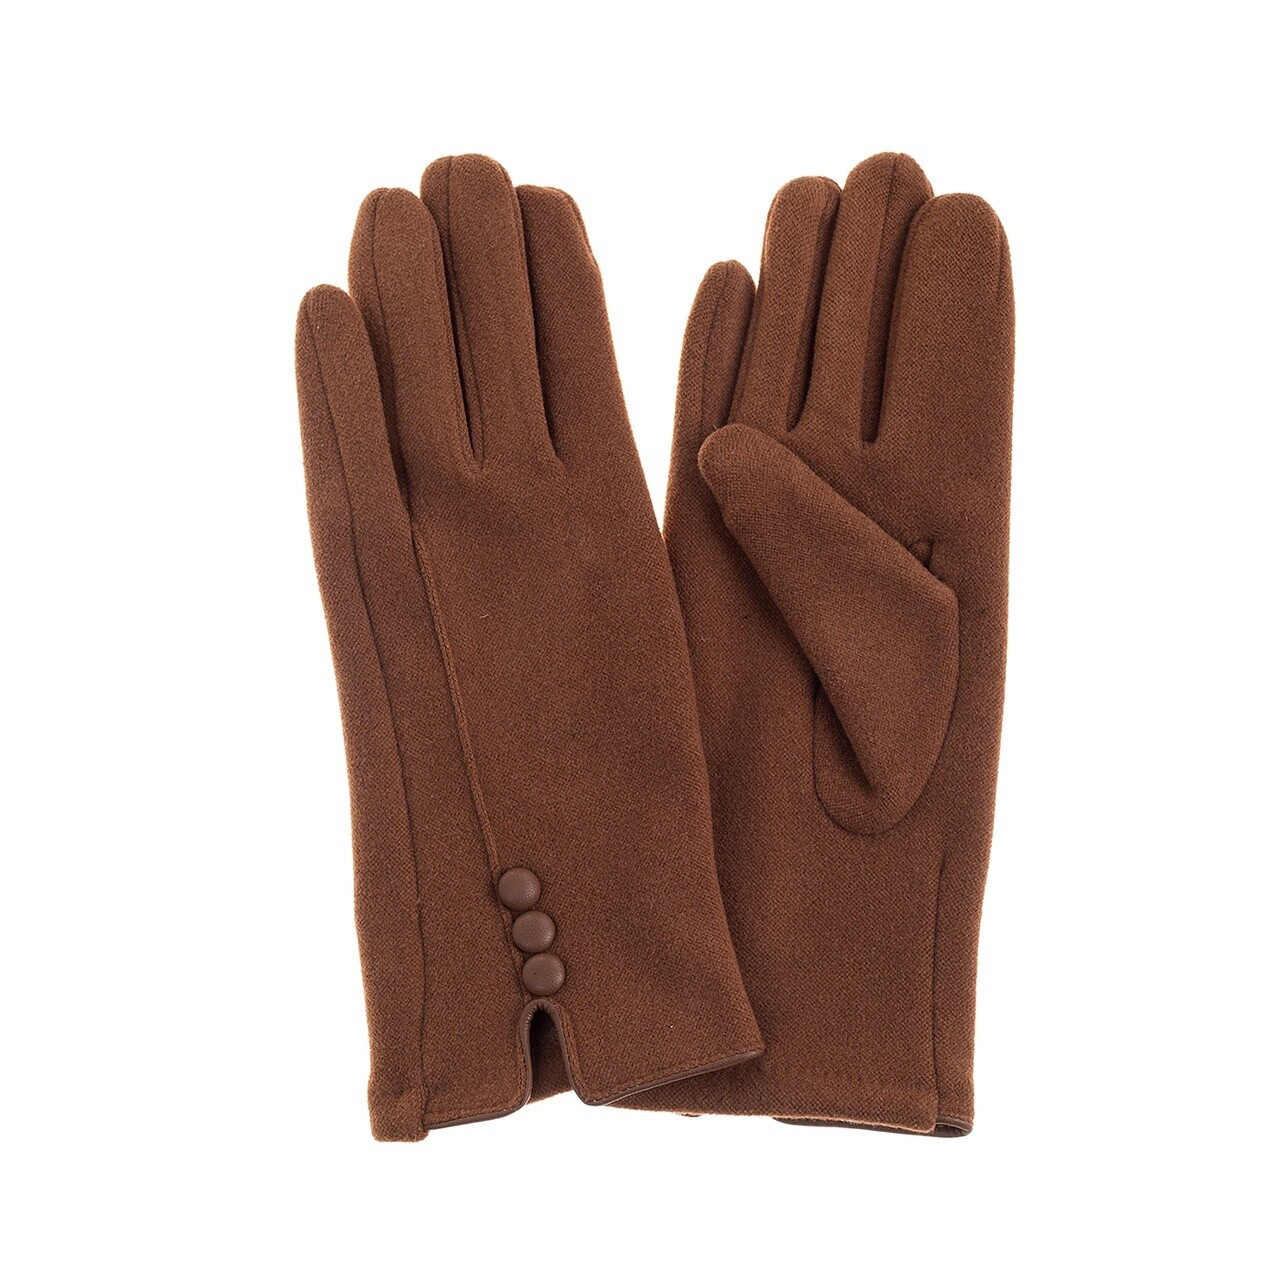 Gloves Caramel 631